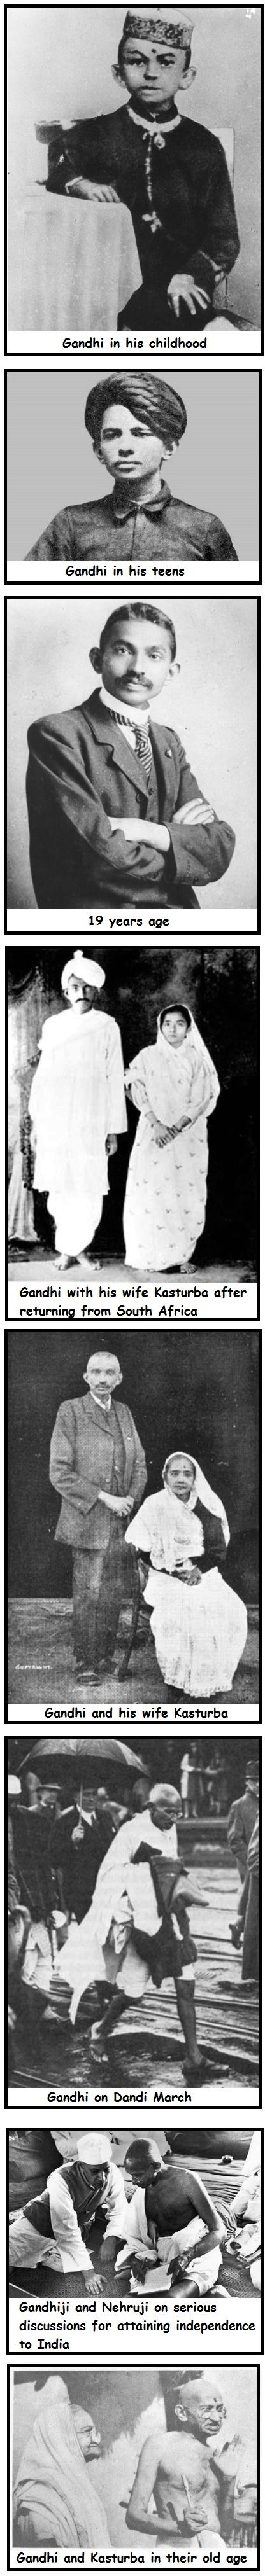 Mahatma Gandhi Photos - Child to Senior